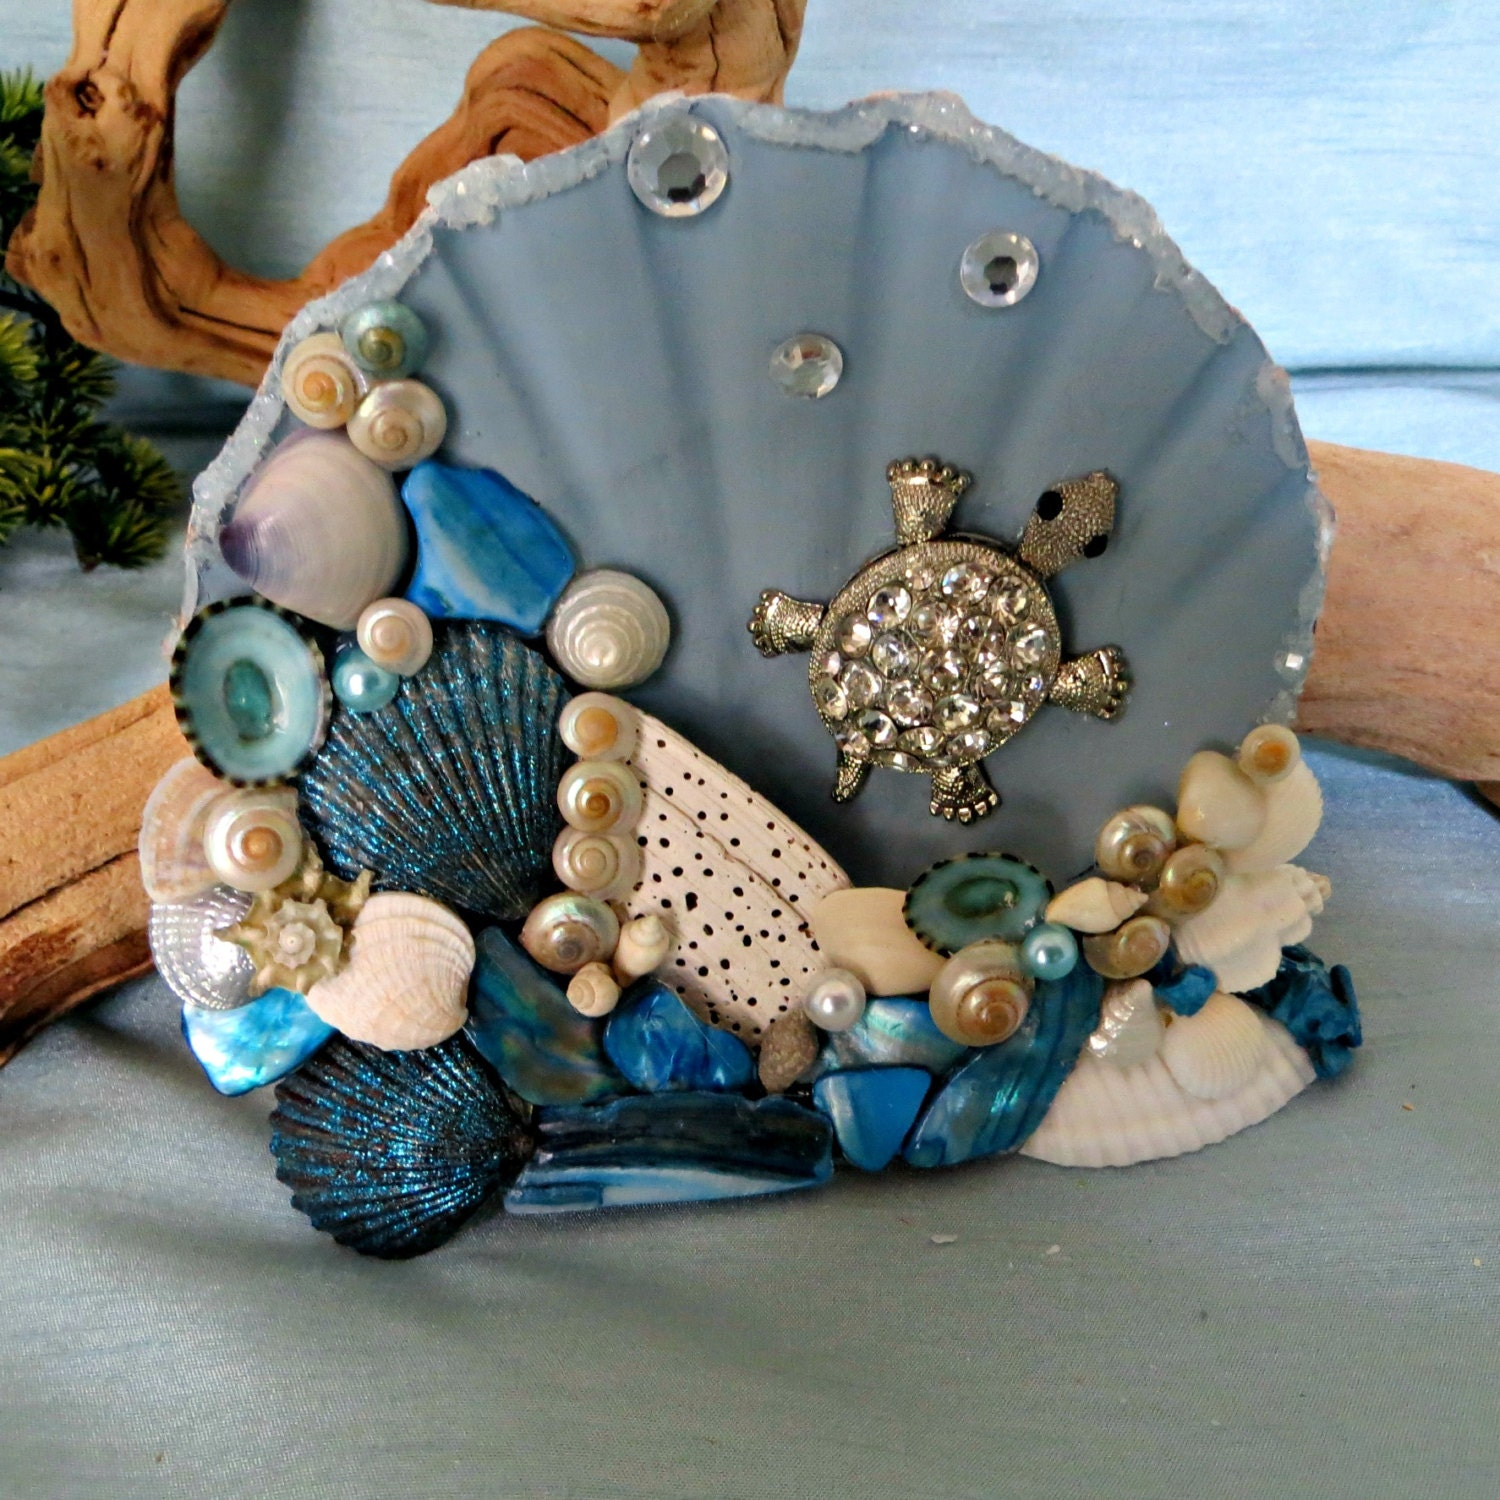 Sea Turtle Seashell Table Top Decor Beach Home Decor